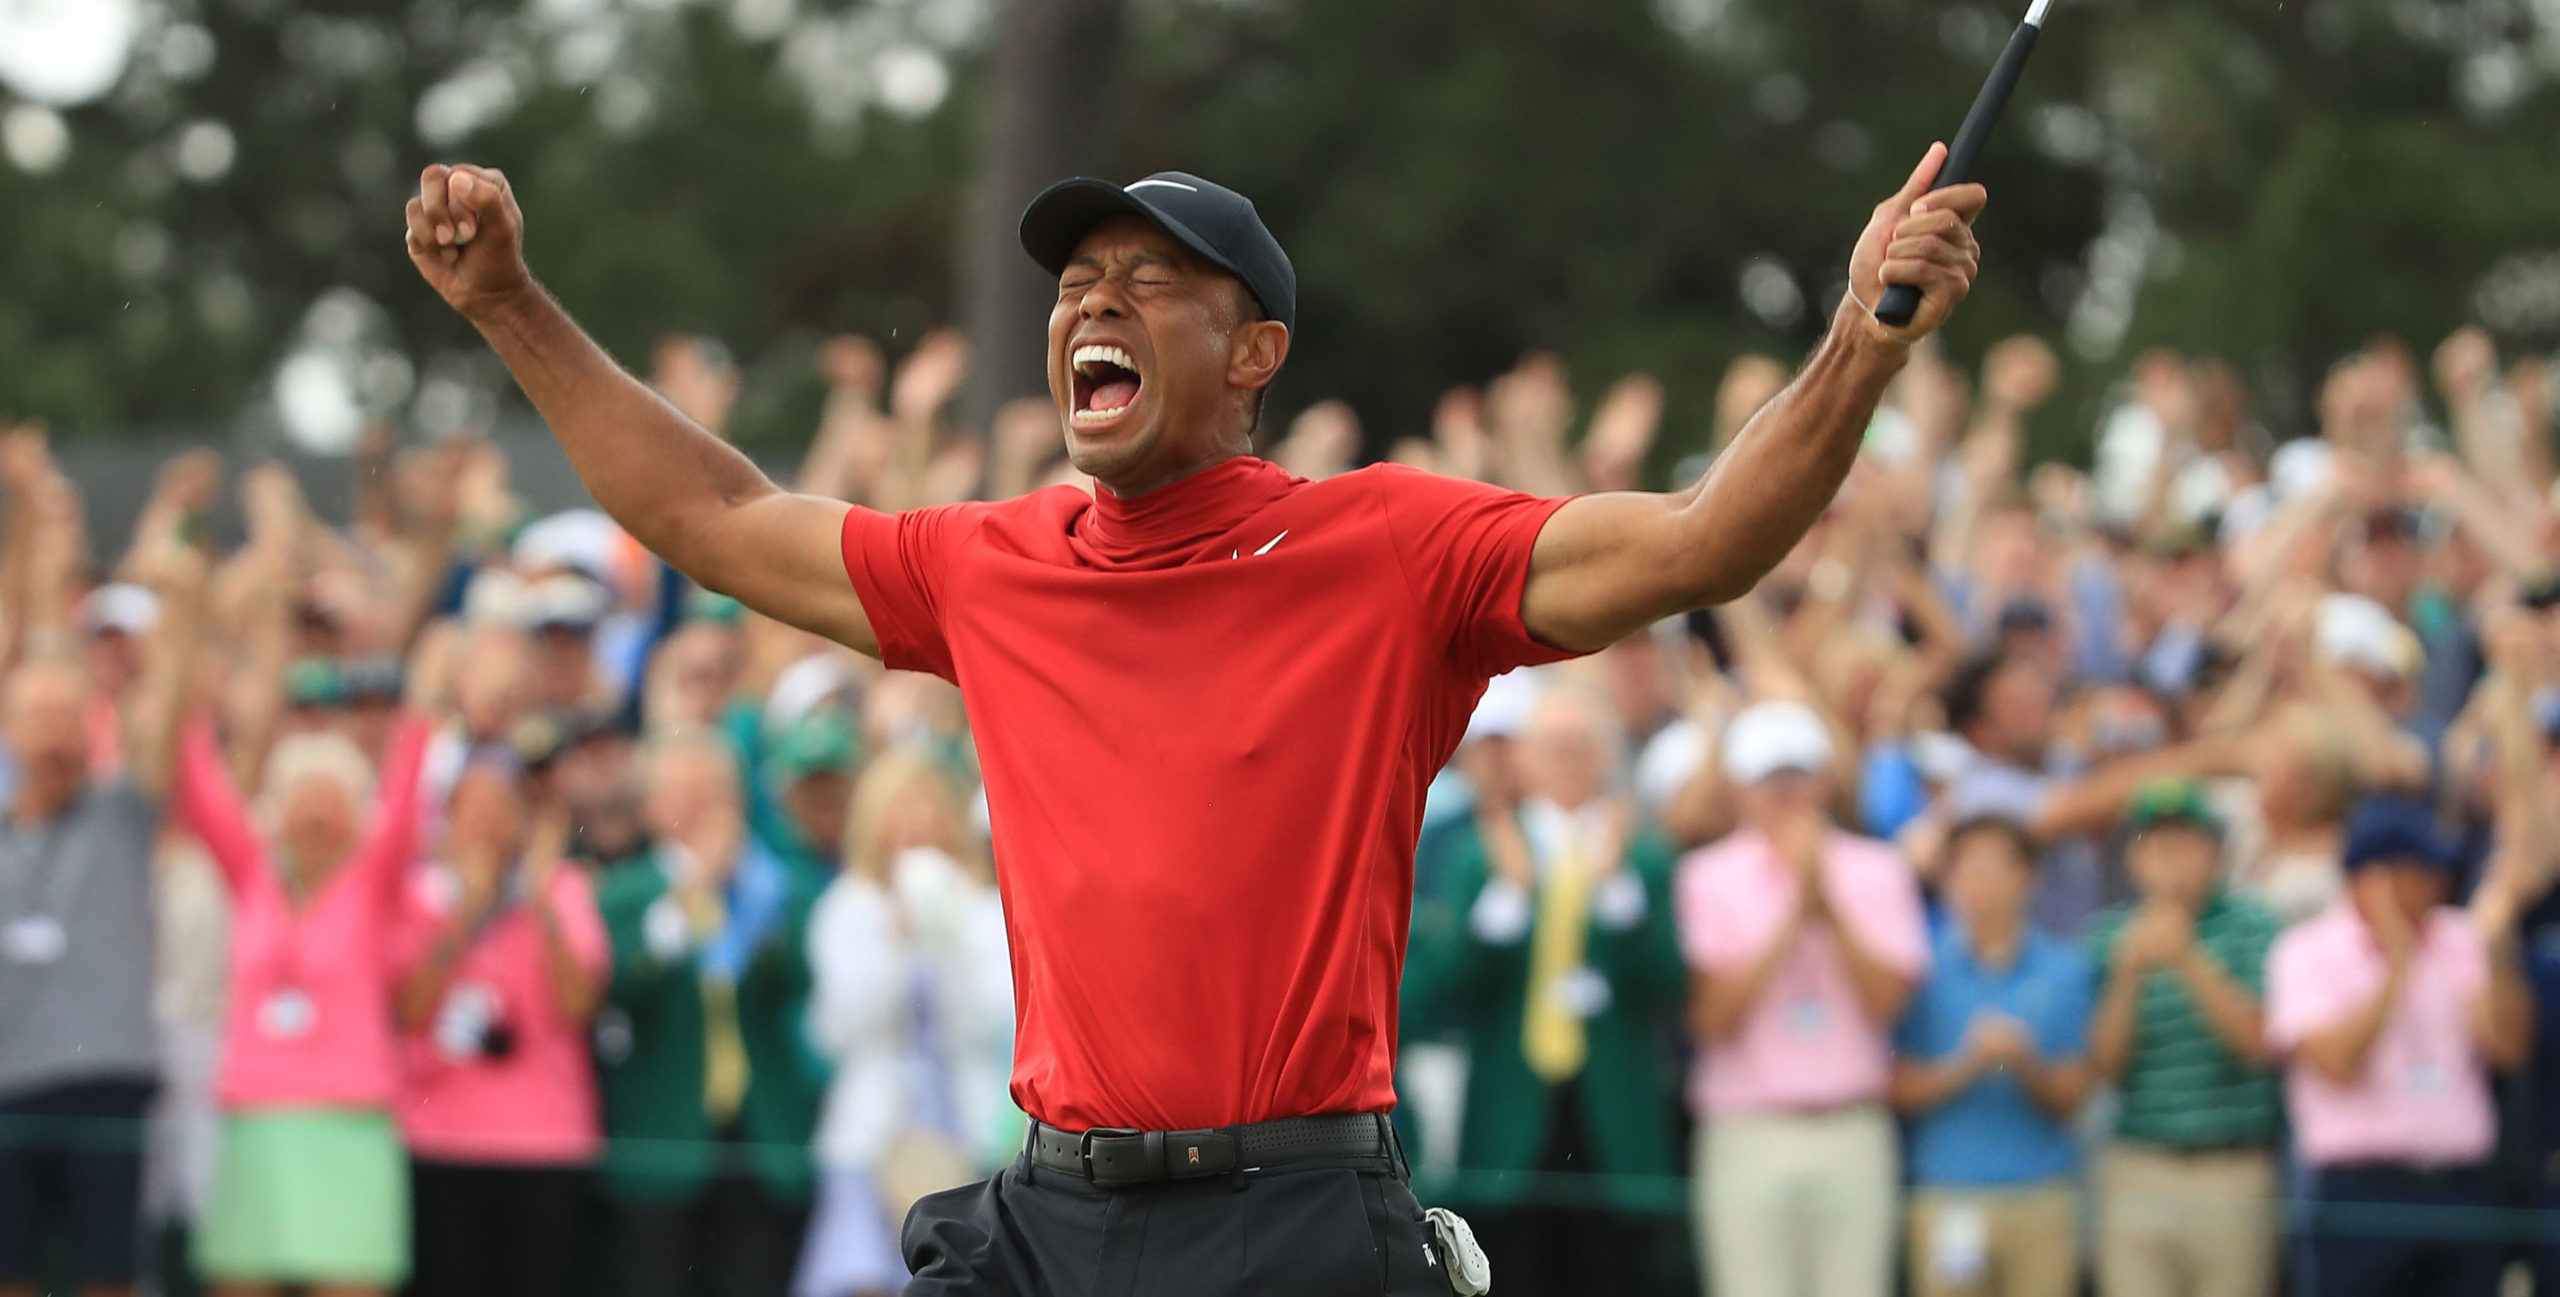 Us masters betting trends side merkle root bitcoins